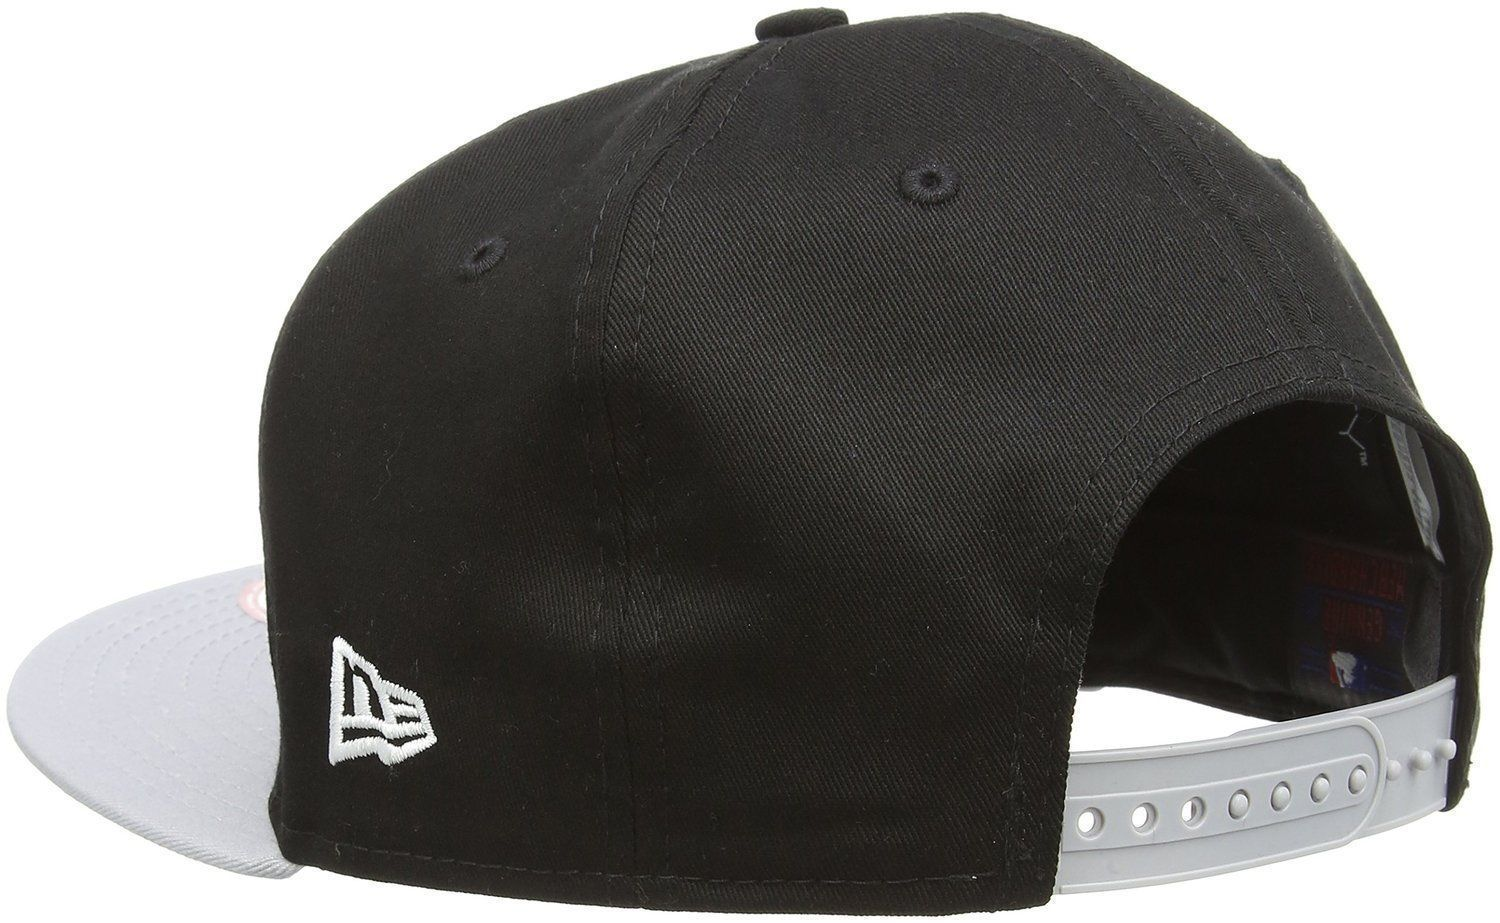 NEW ERA MENS 9FIFTY BASEBALL CAP.NFL OAKLAND RAIDERS FLAT PEAK ... 66124c64891